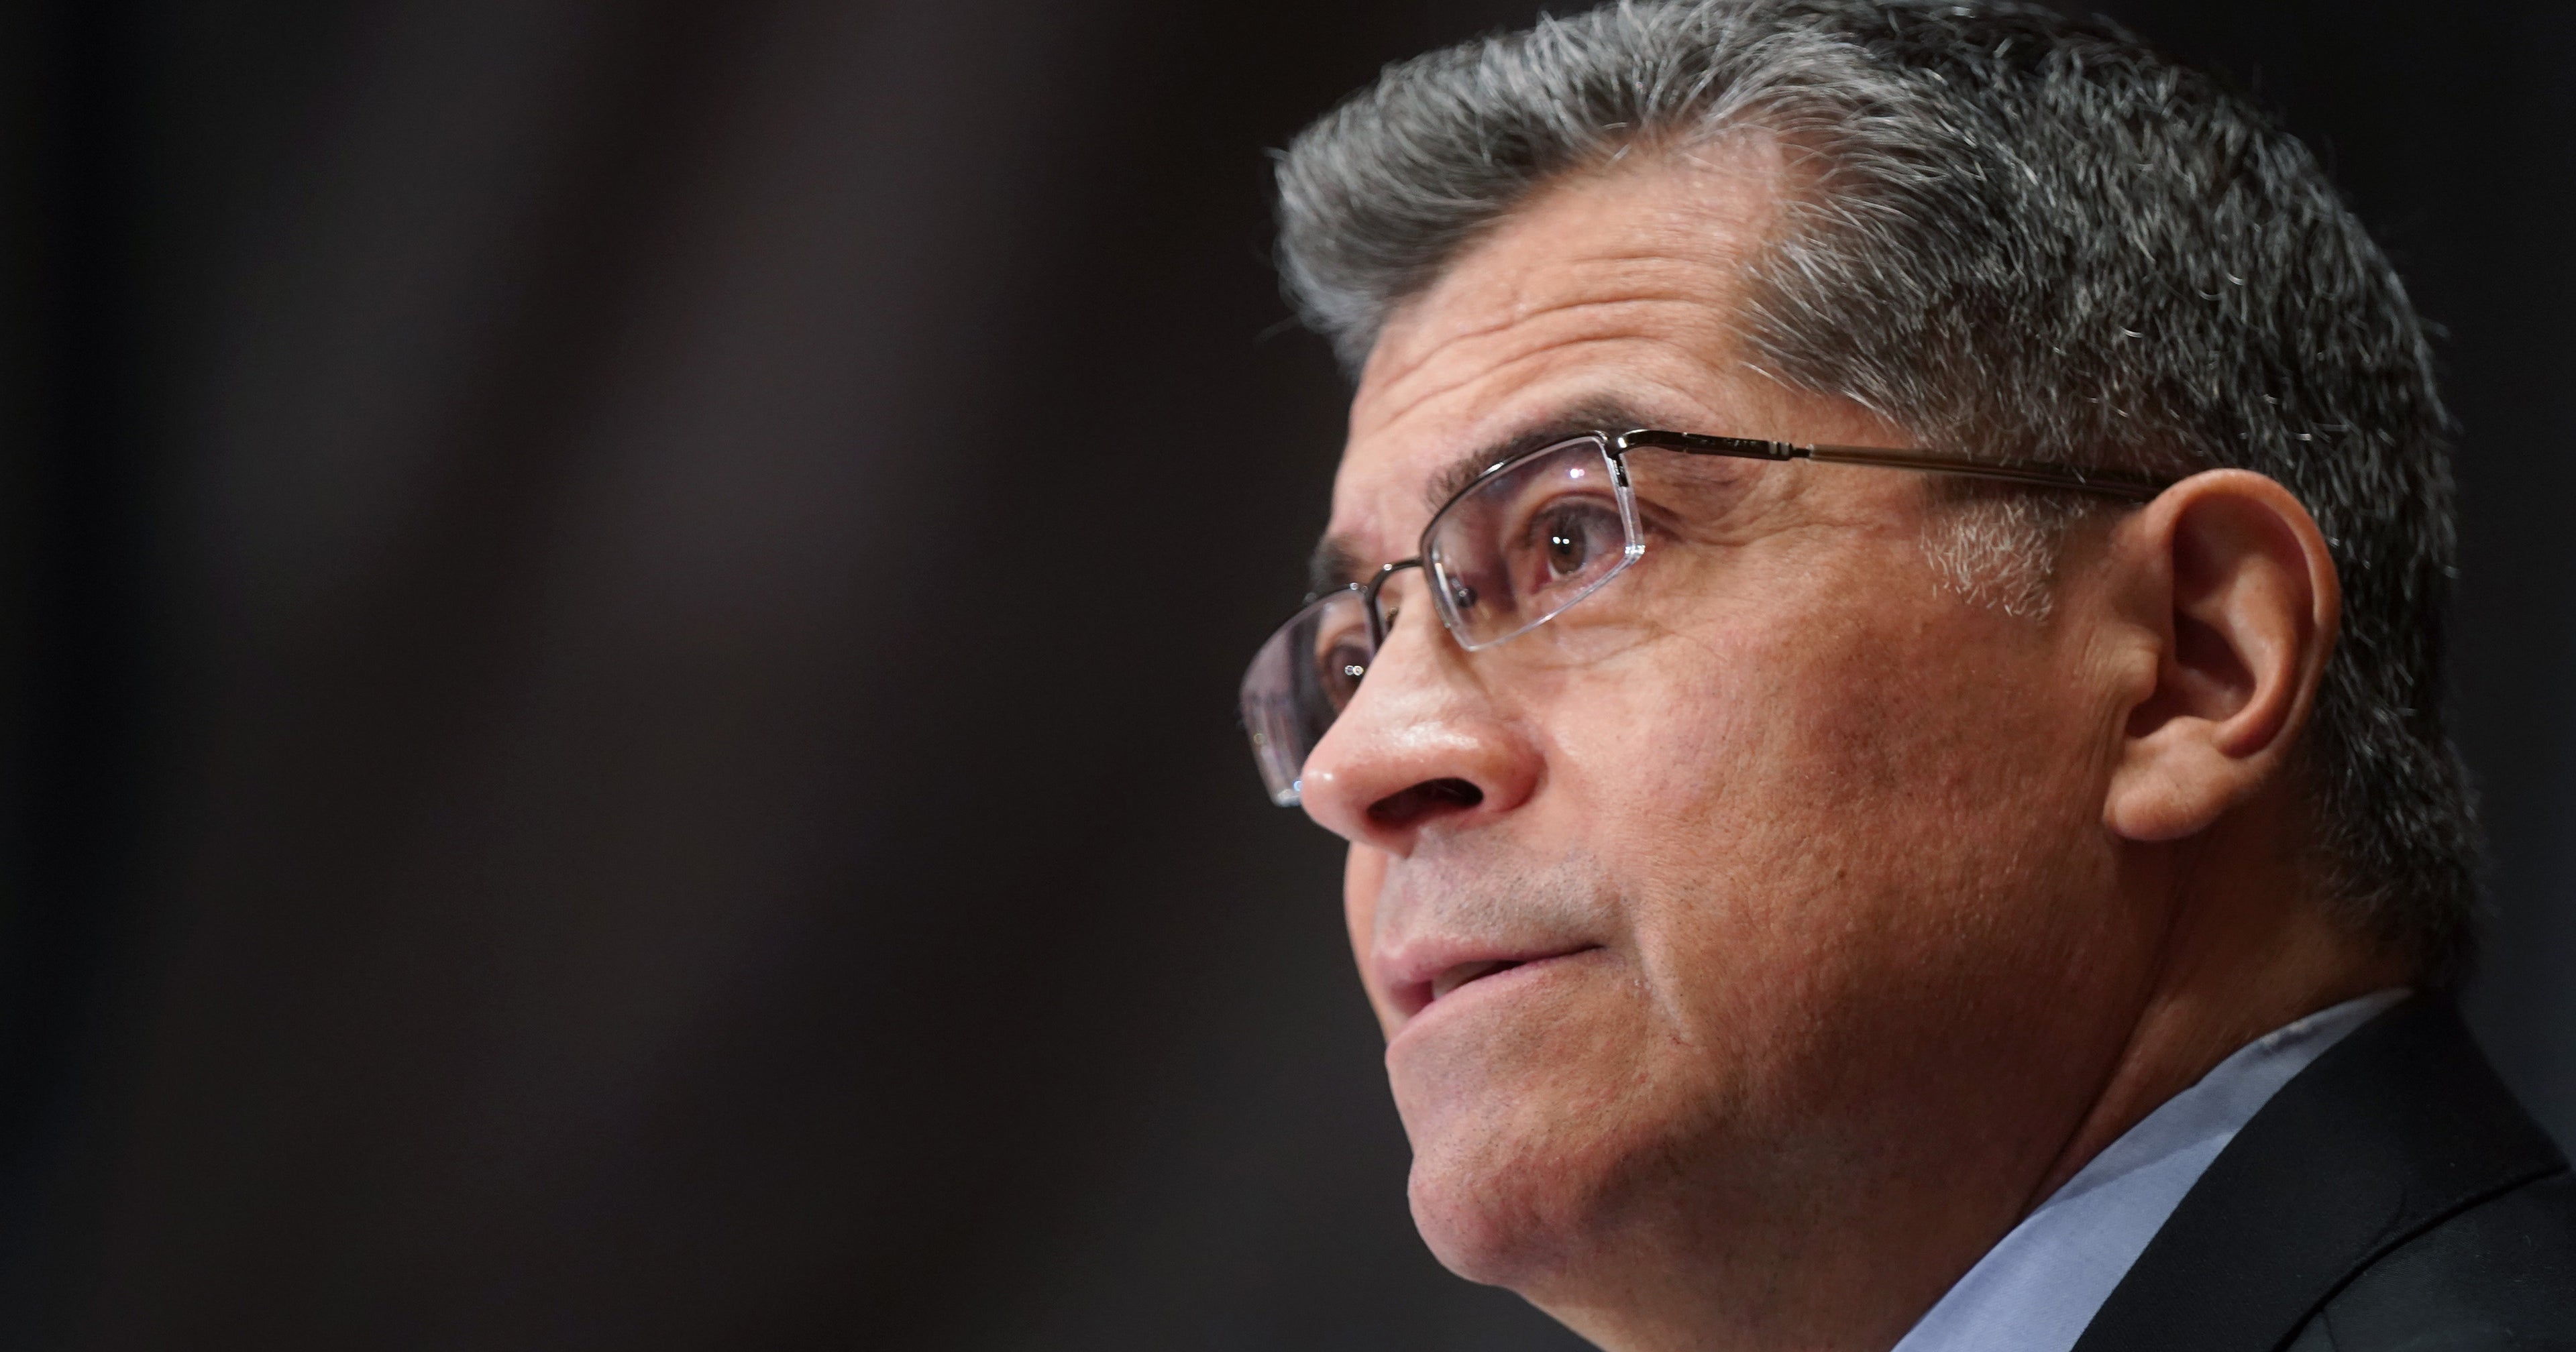 www.refinery29.com: Why Republicans Are Pushing Back Against Xavier Becerra's Confirmation